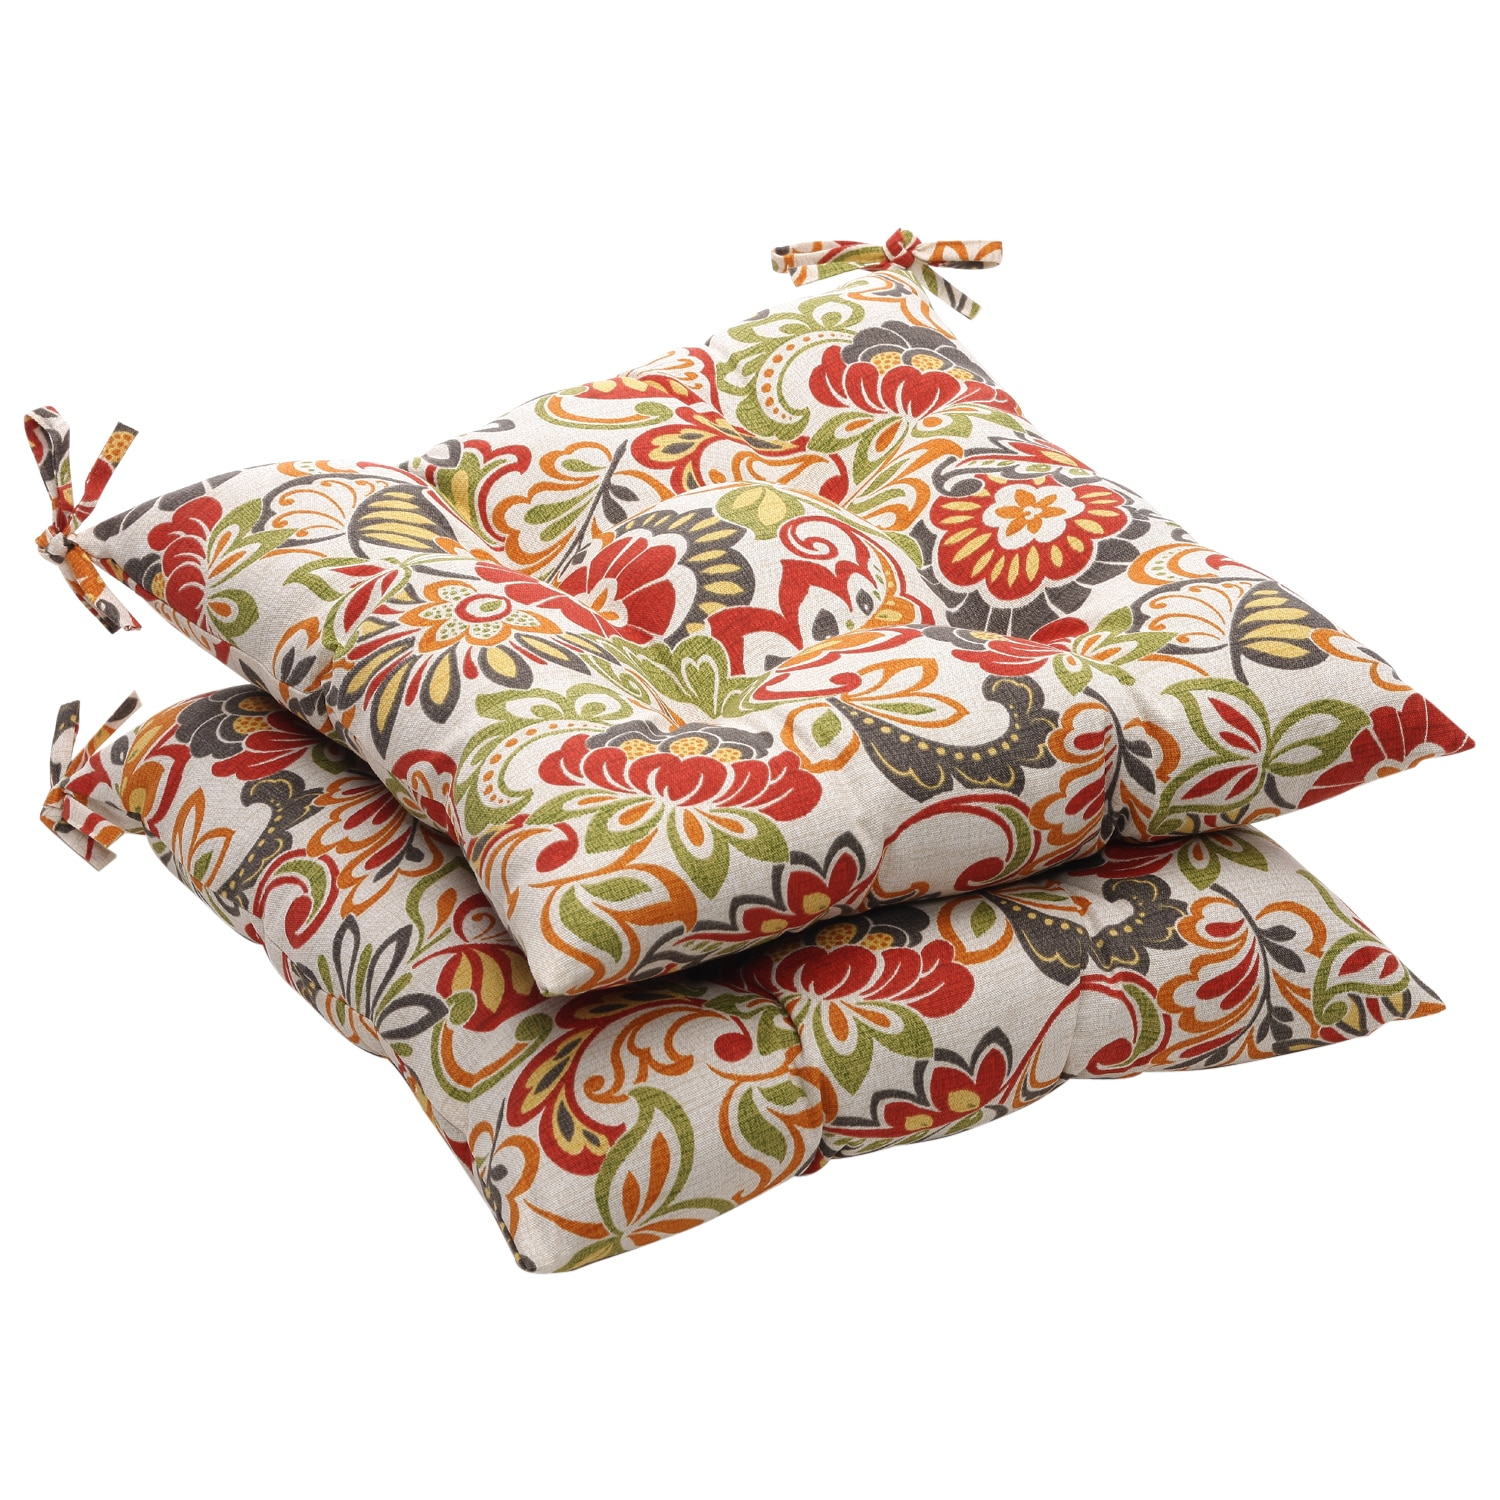 Multicolored Floral Outdoor Tufted Seat Cushions (Set of 2)